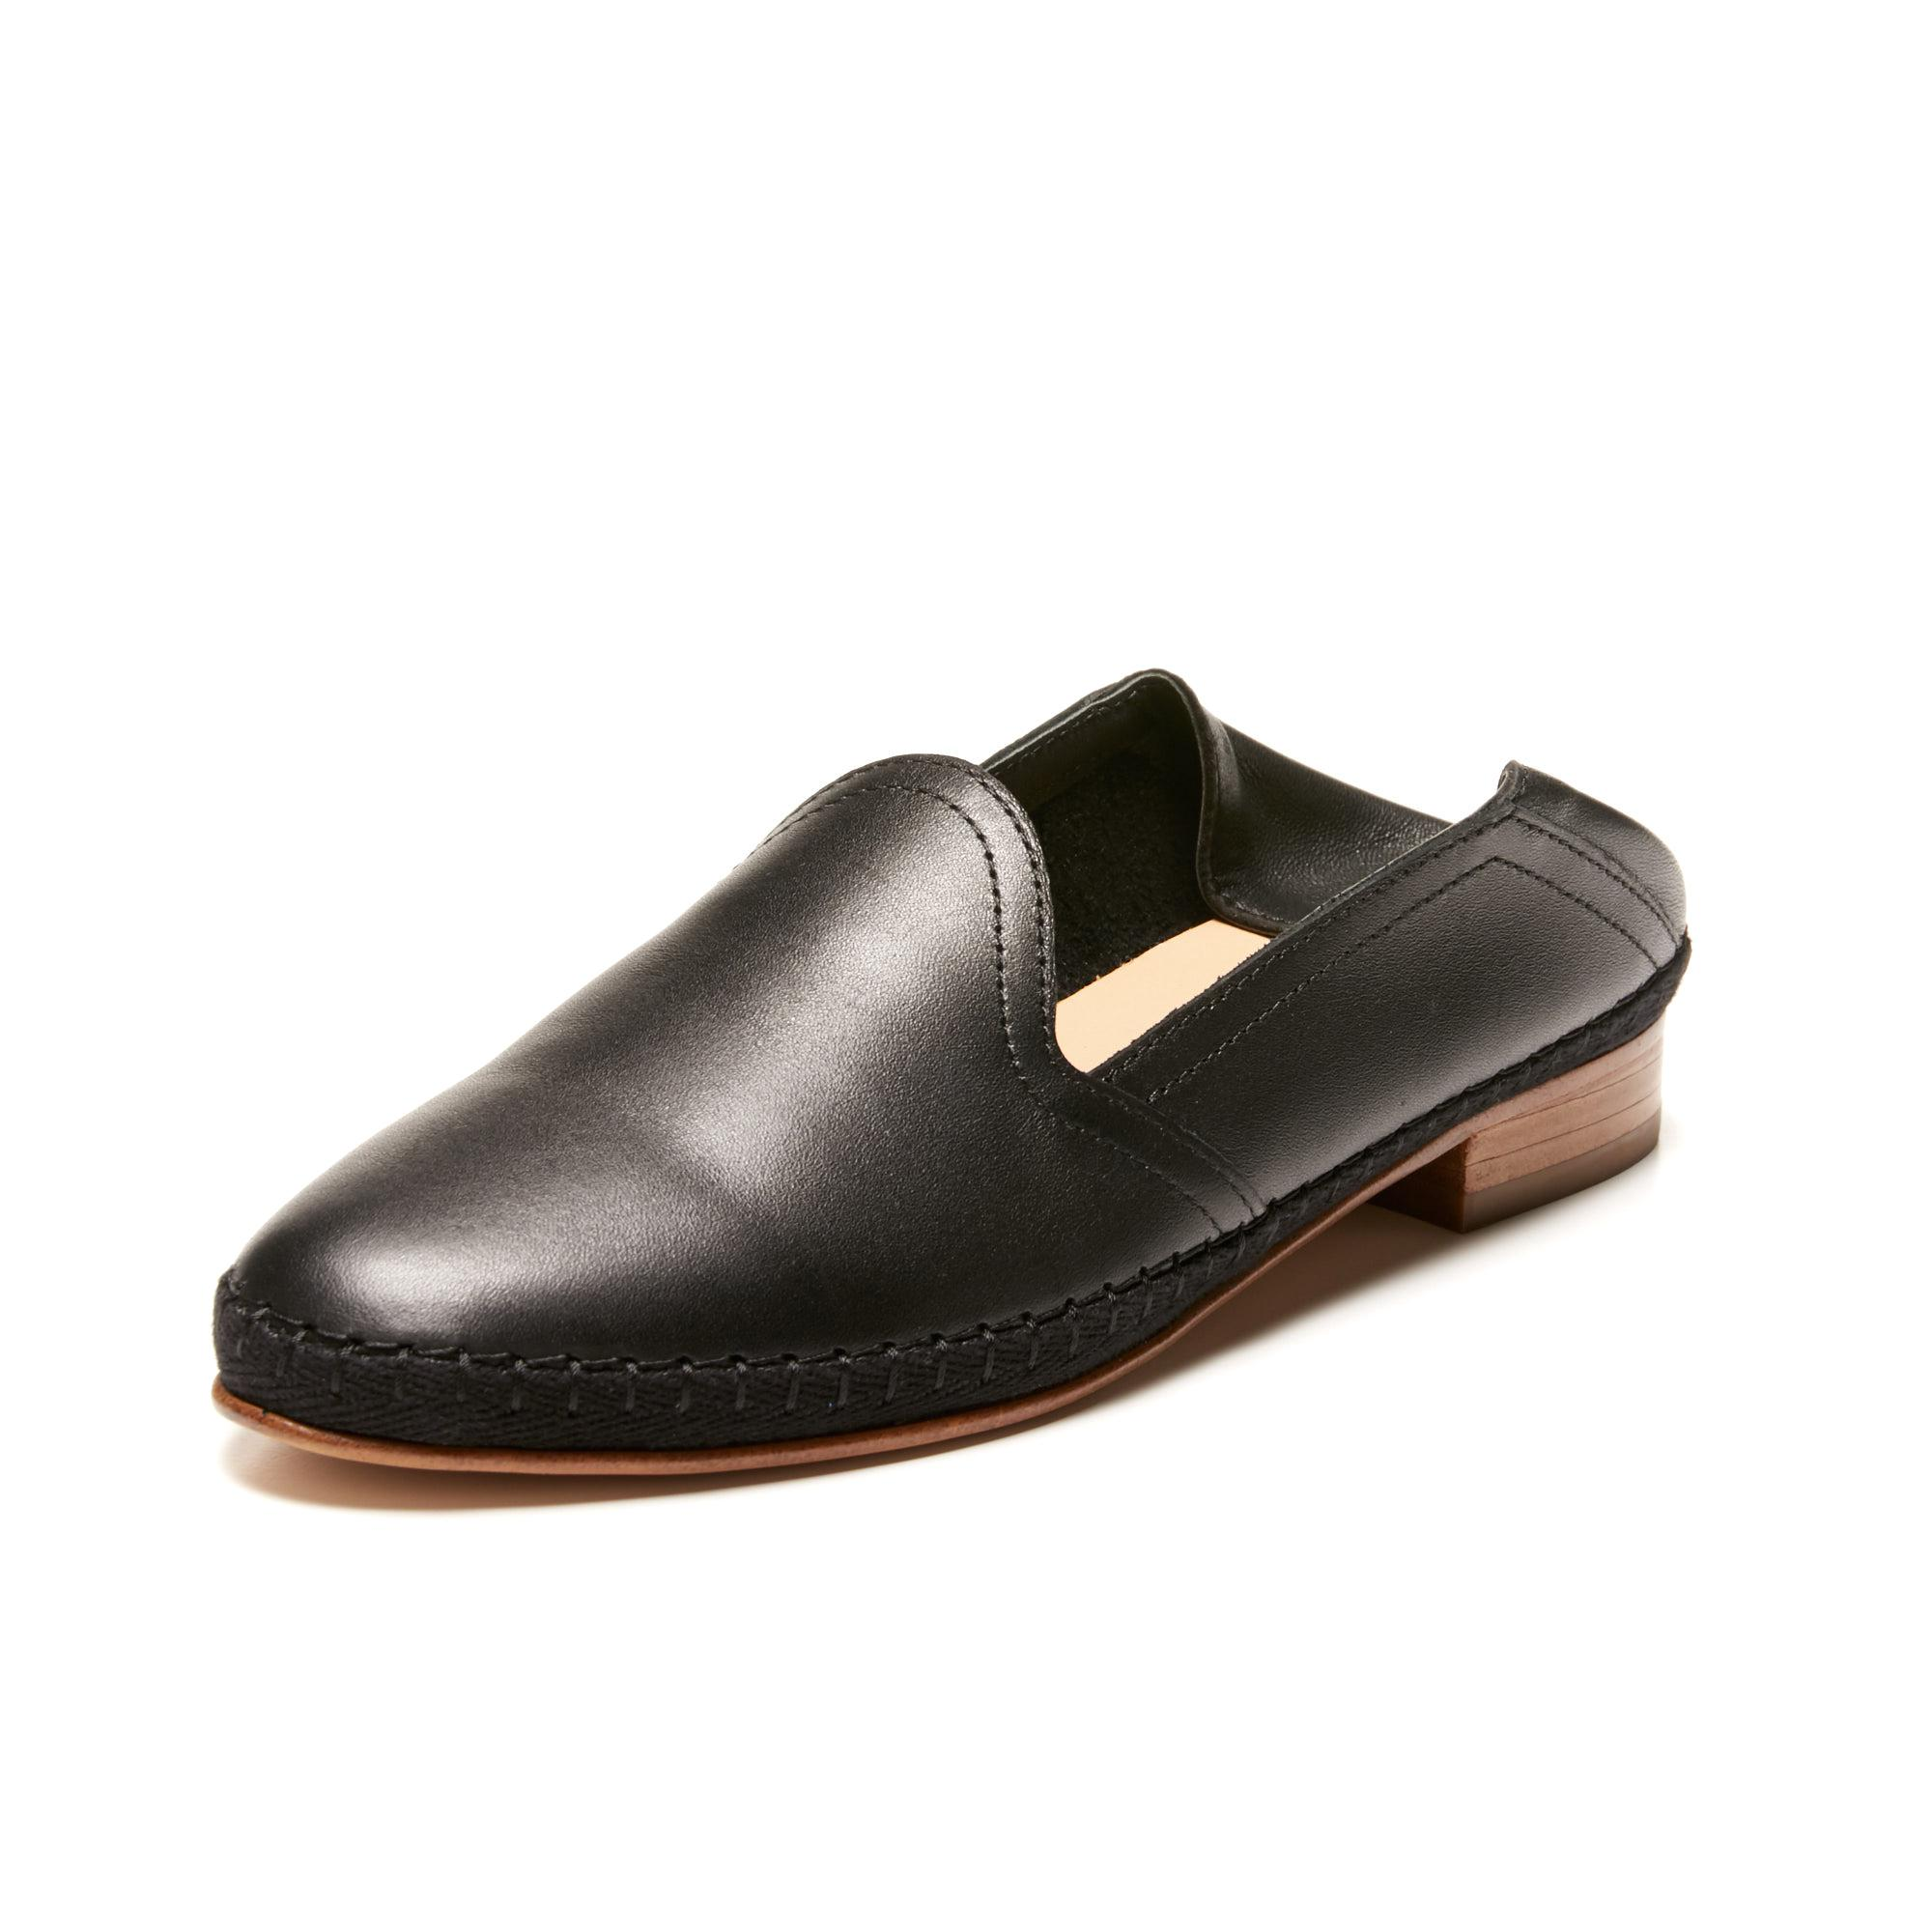 6287052ce5b Lyst - Soludos Venetian Loafer in Black